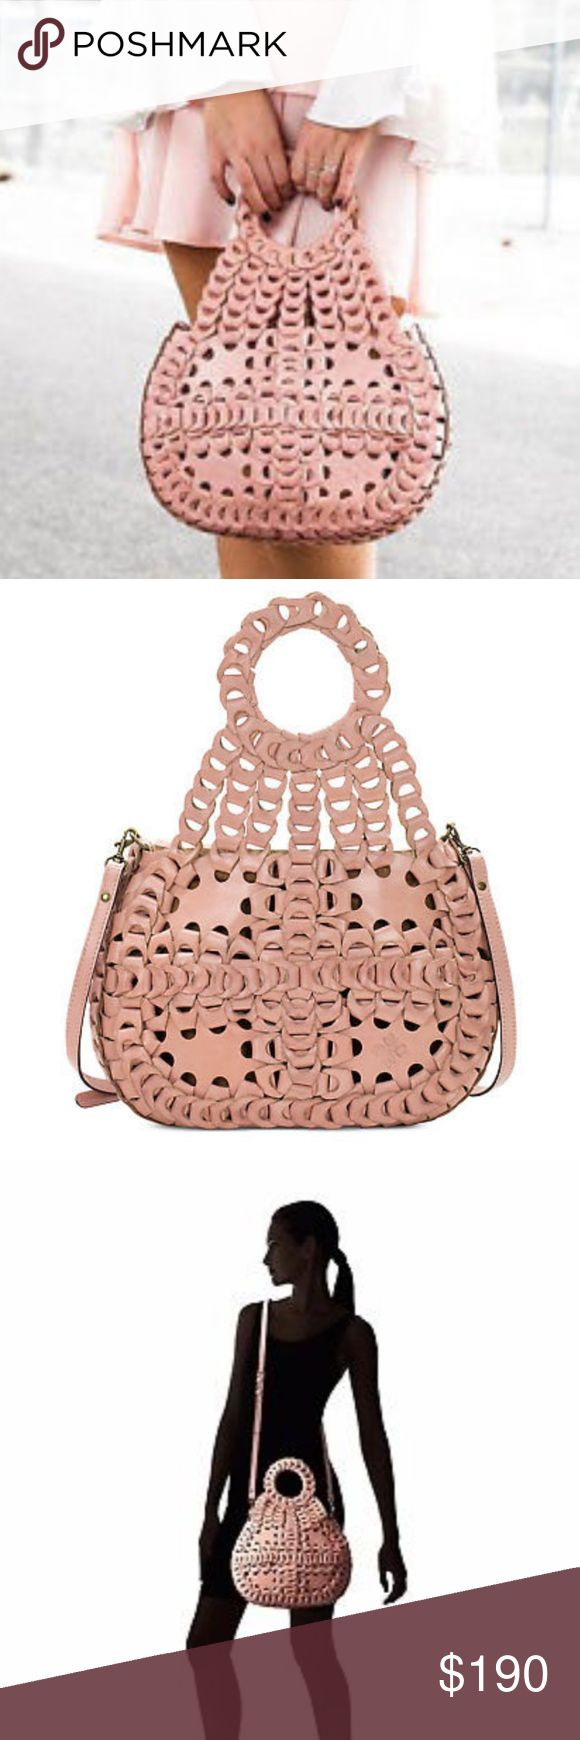 Patricia Nash Chainlink Ticci Blush Leather Bag Authentic Italian Leather Gorgeous bag Never carried New with tags Crossbody strap included Dust bag included  More details to come Patricia Nash Bags Satchels